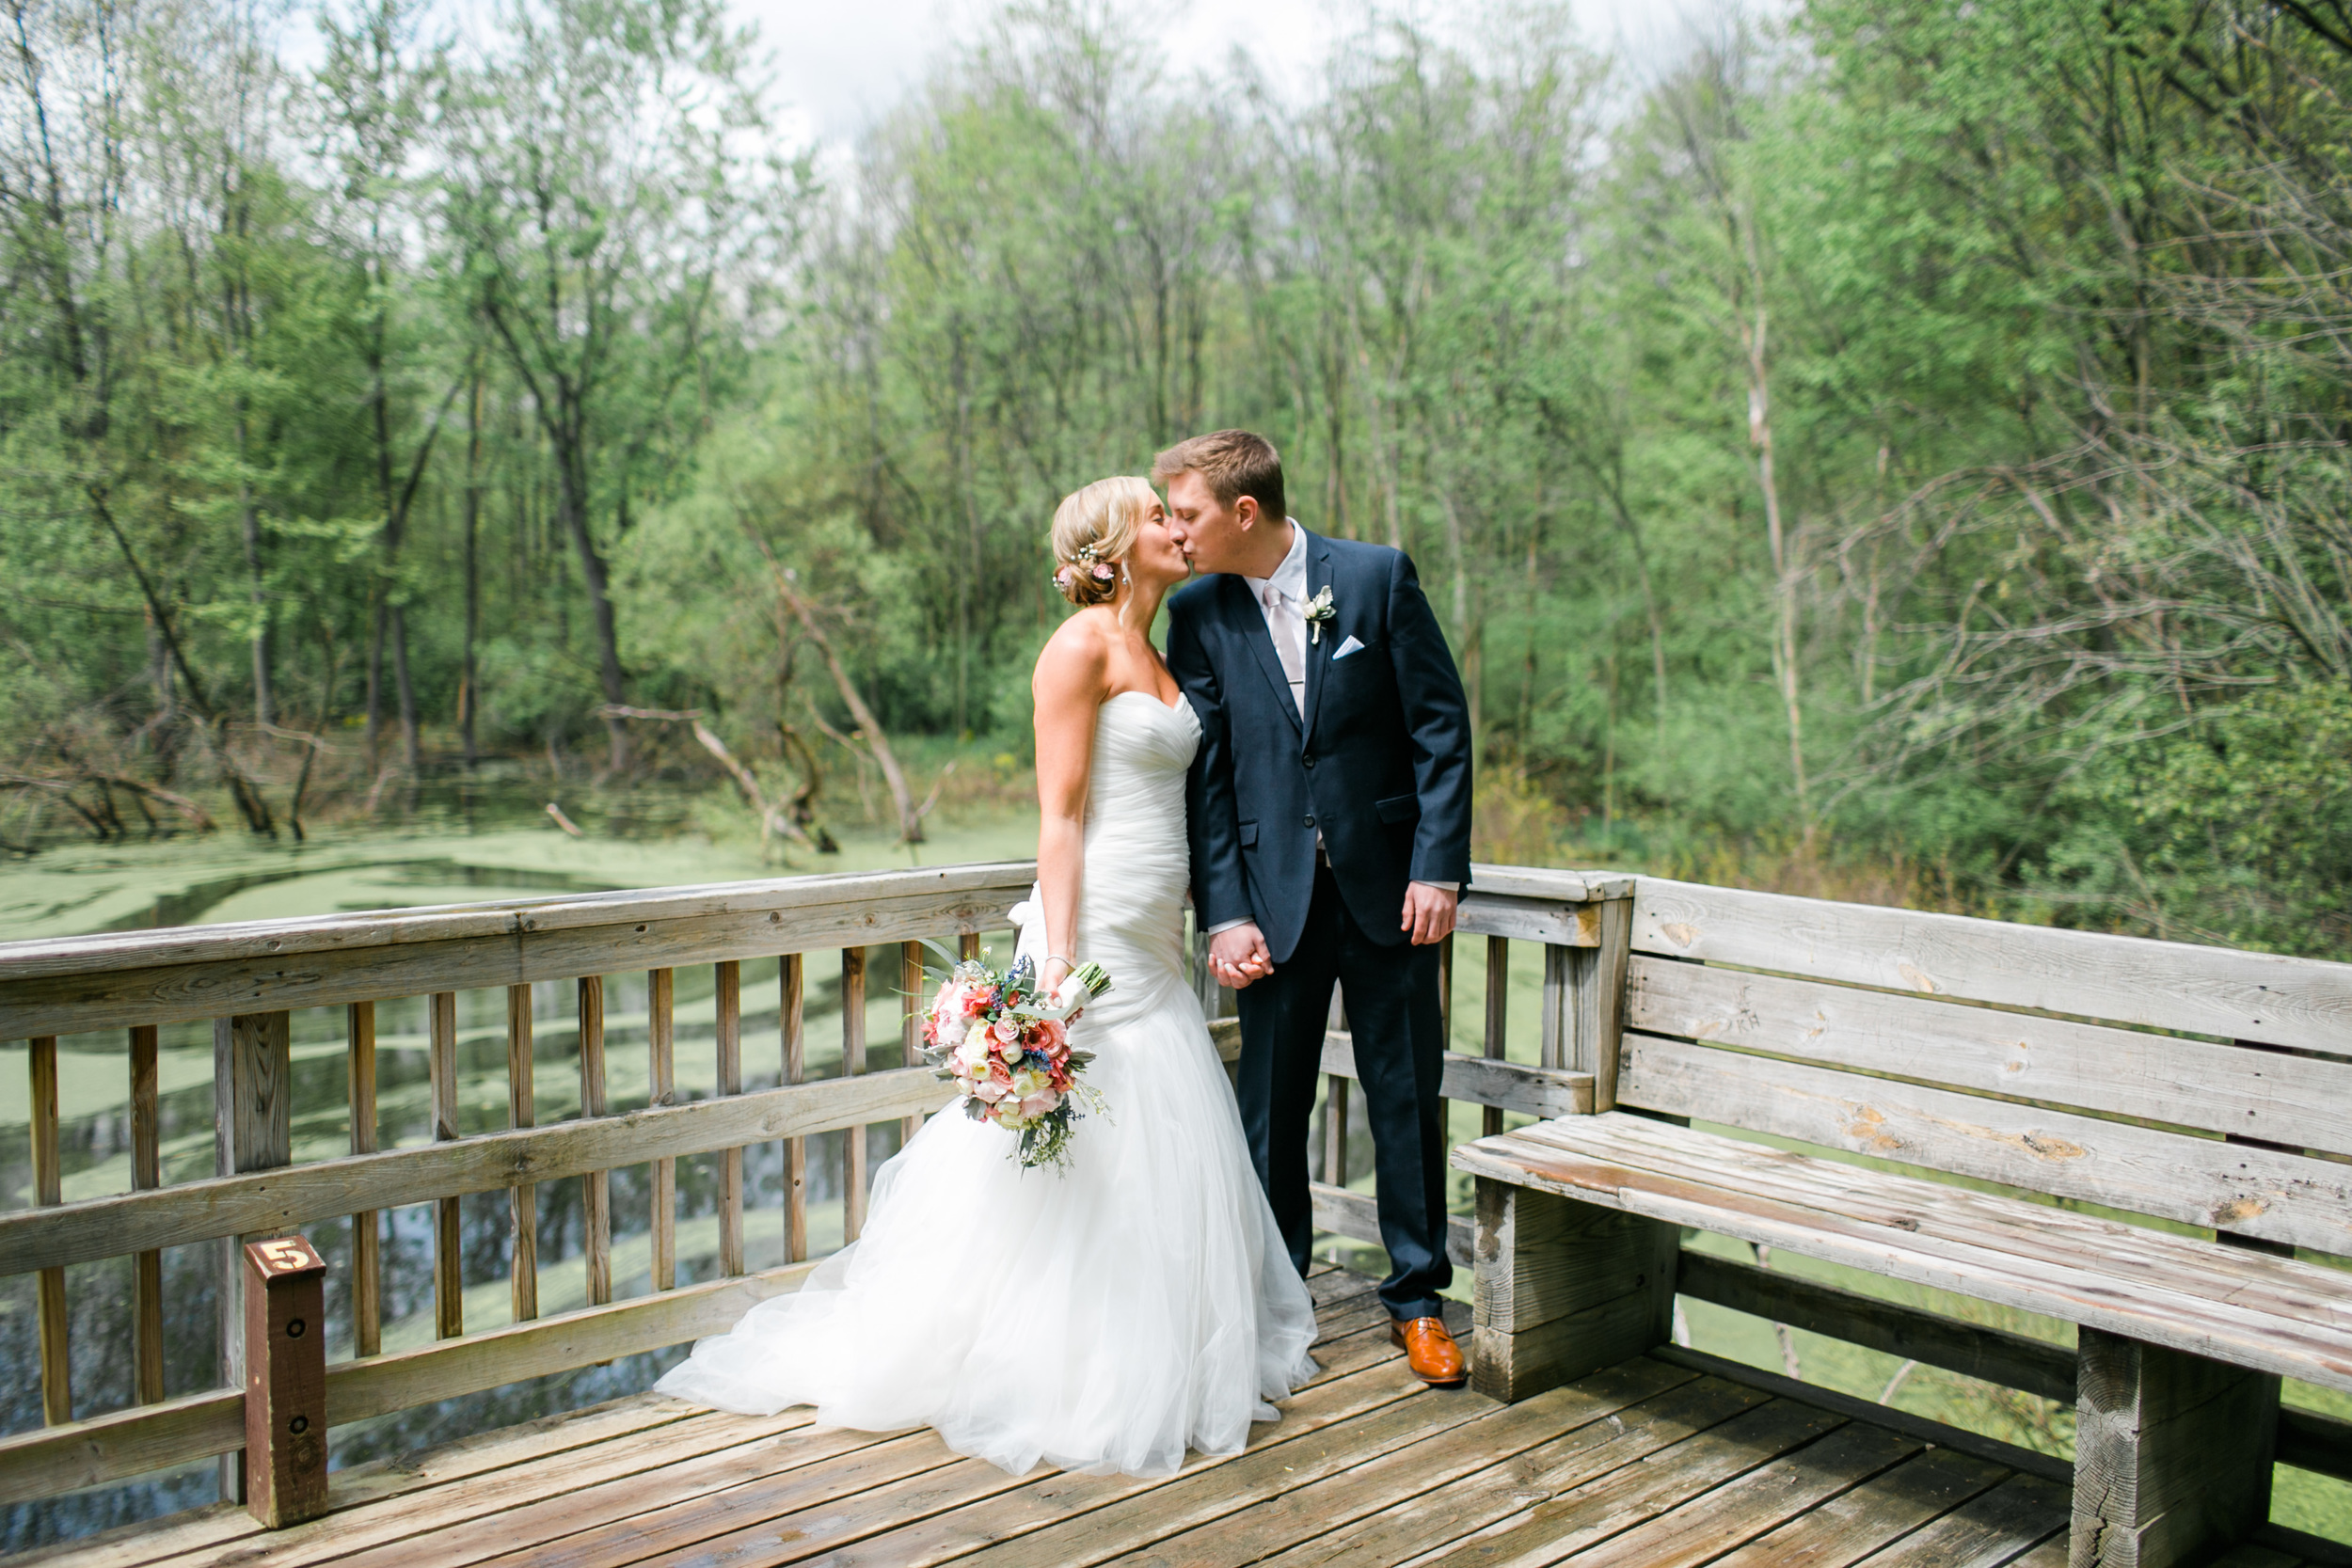 mayden photography weddings-15.jpg